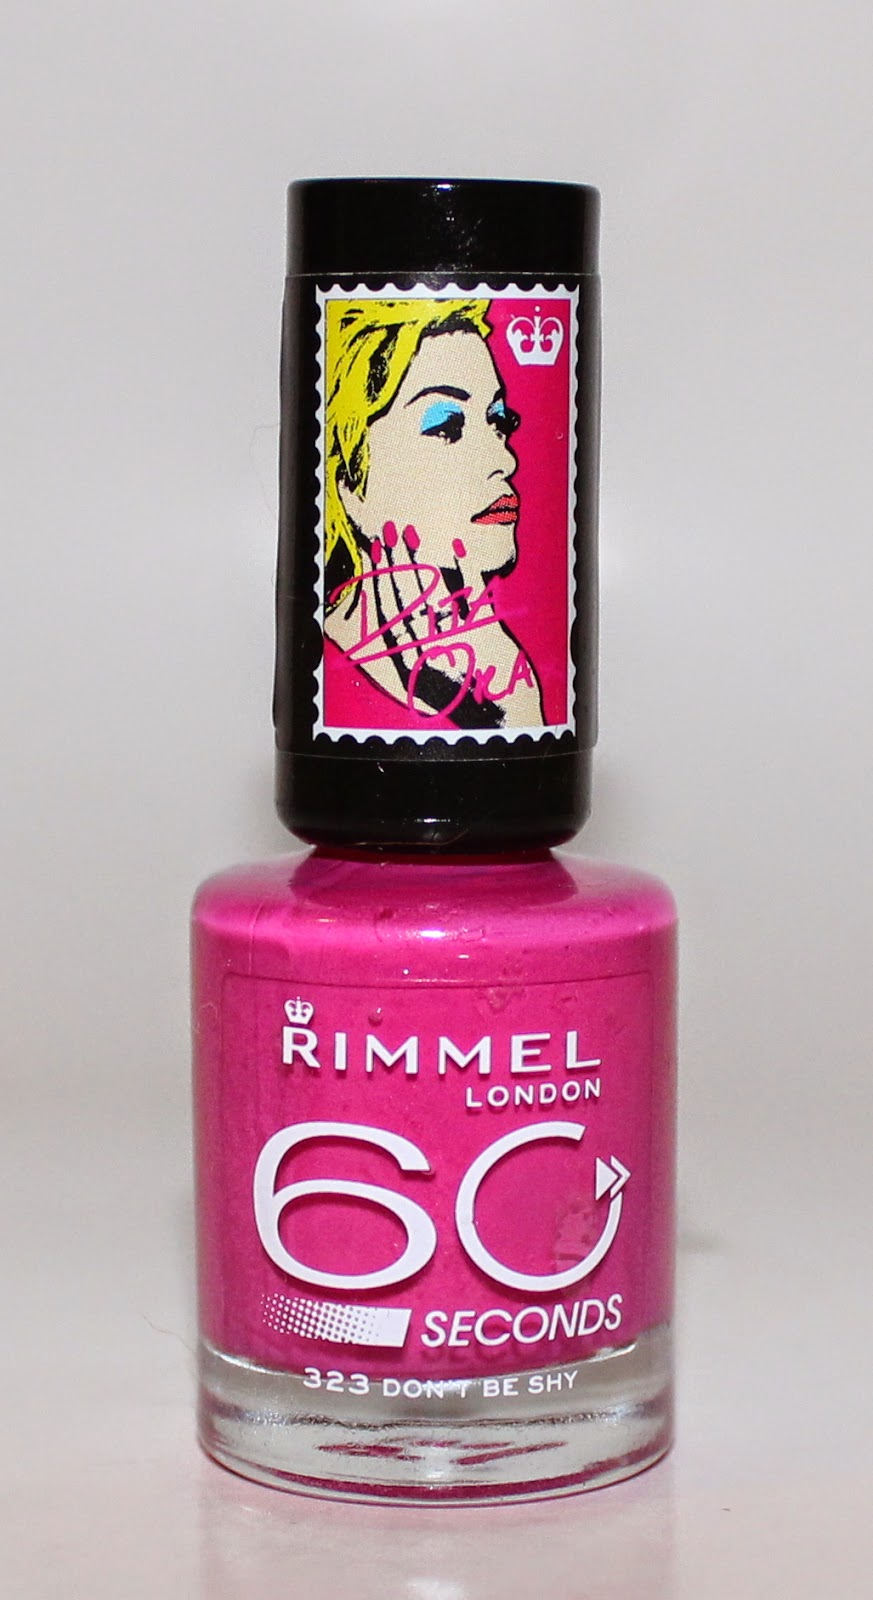 Rimmel London x Rita Ora 60 Seconds Nail Polish in Don't Be Shy